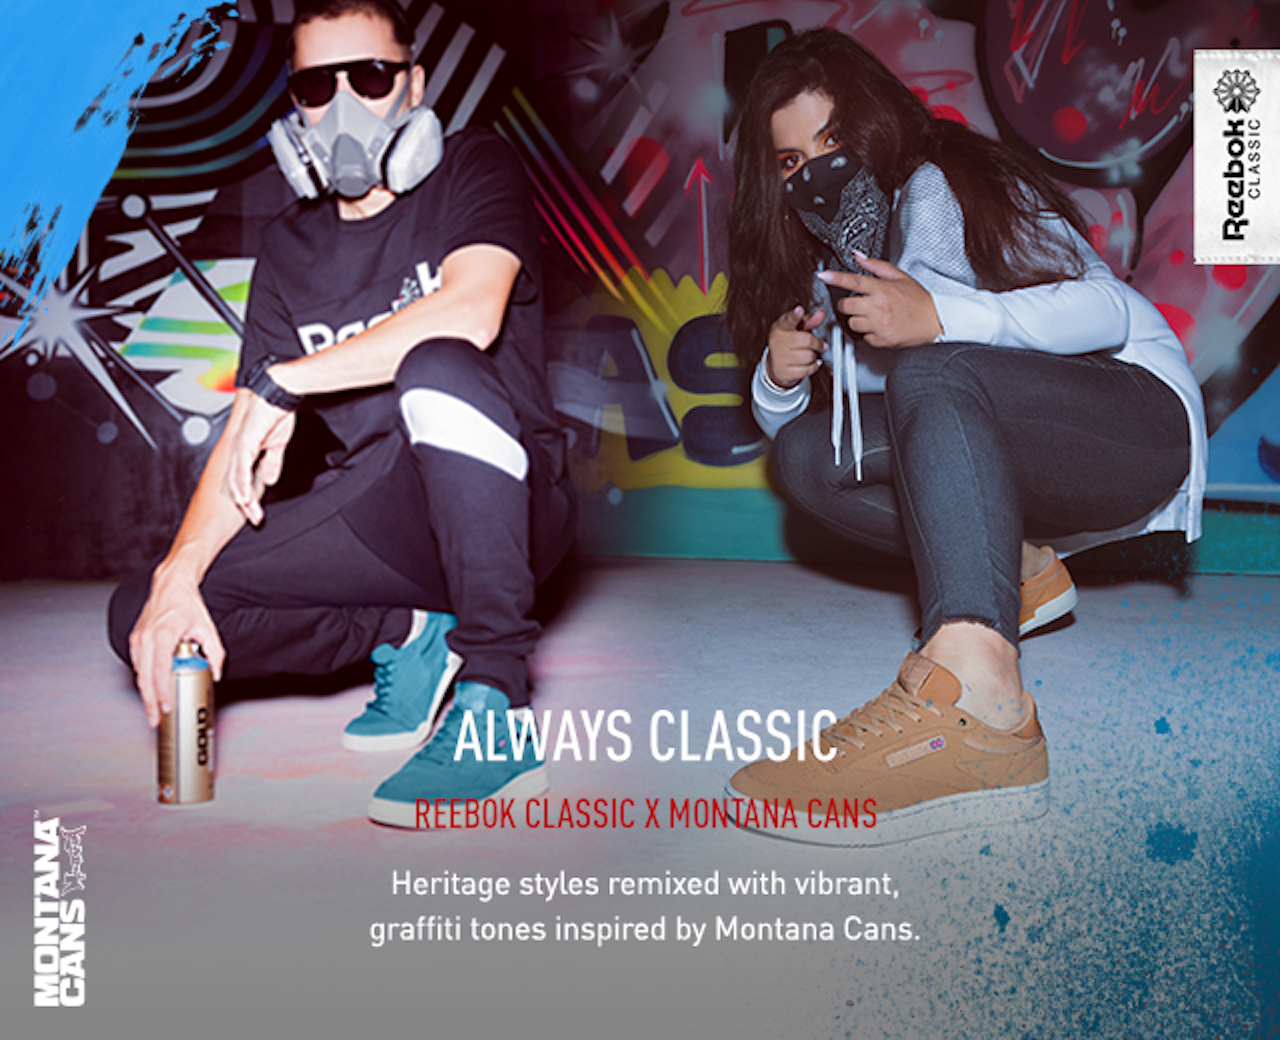 Reebok-Always-Classics-Club-C-Montana-Cans-PLP-Wallpaper-Mobile.jpg